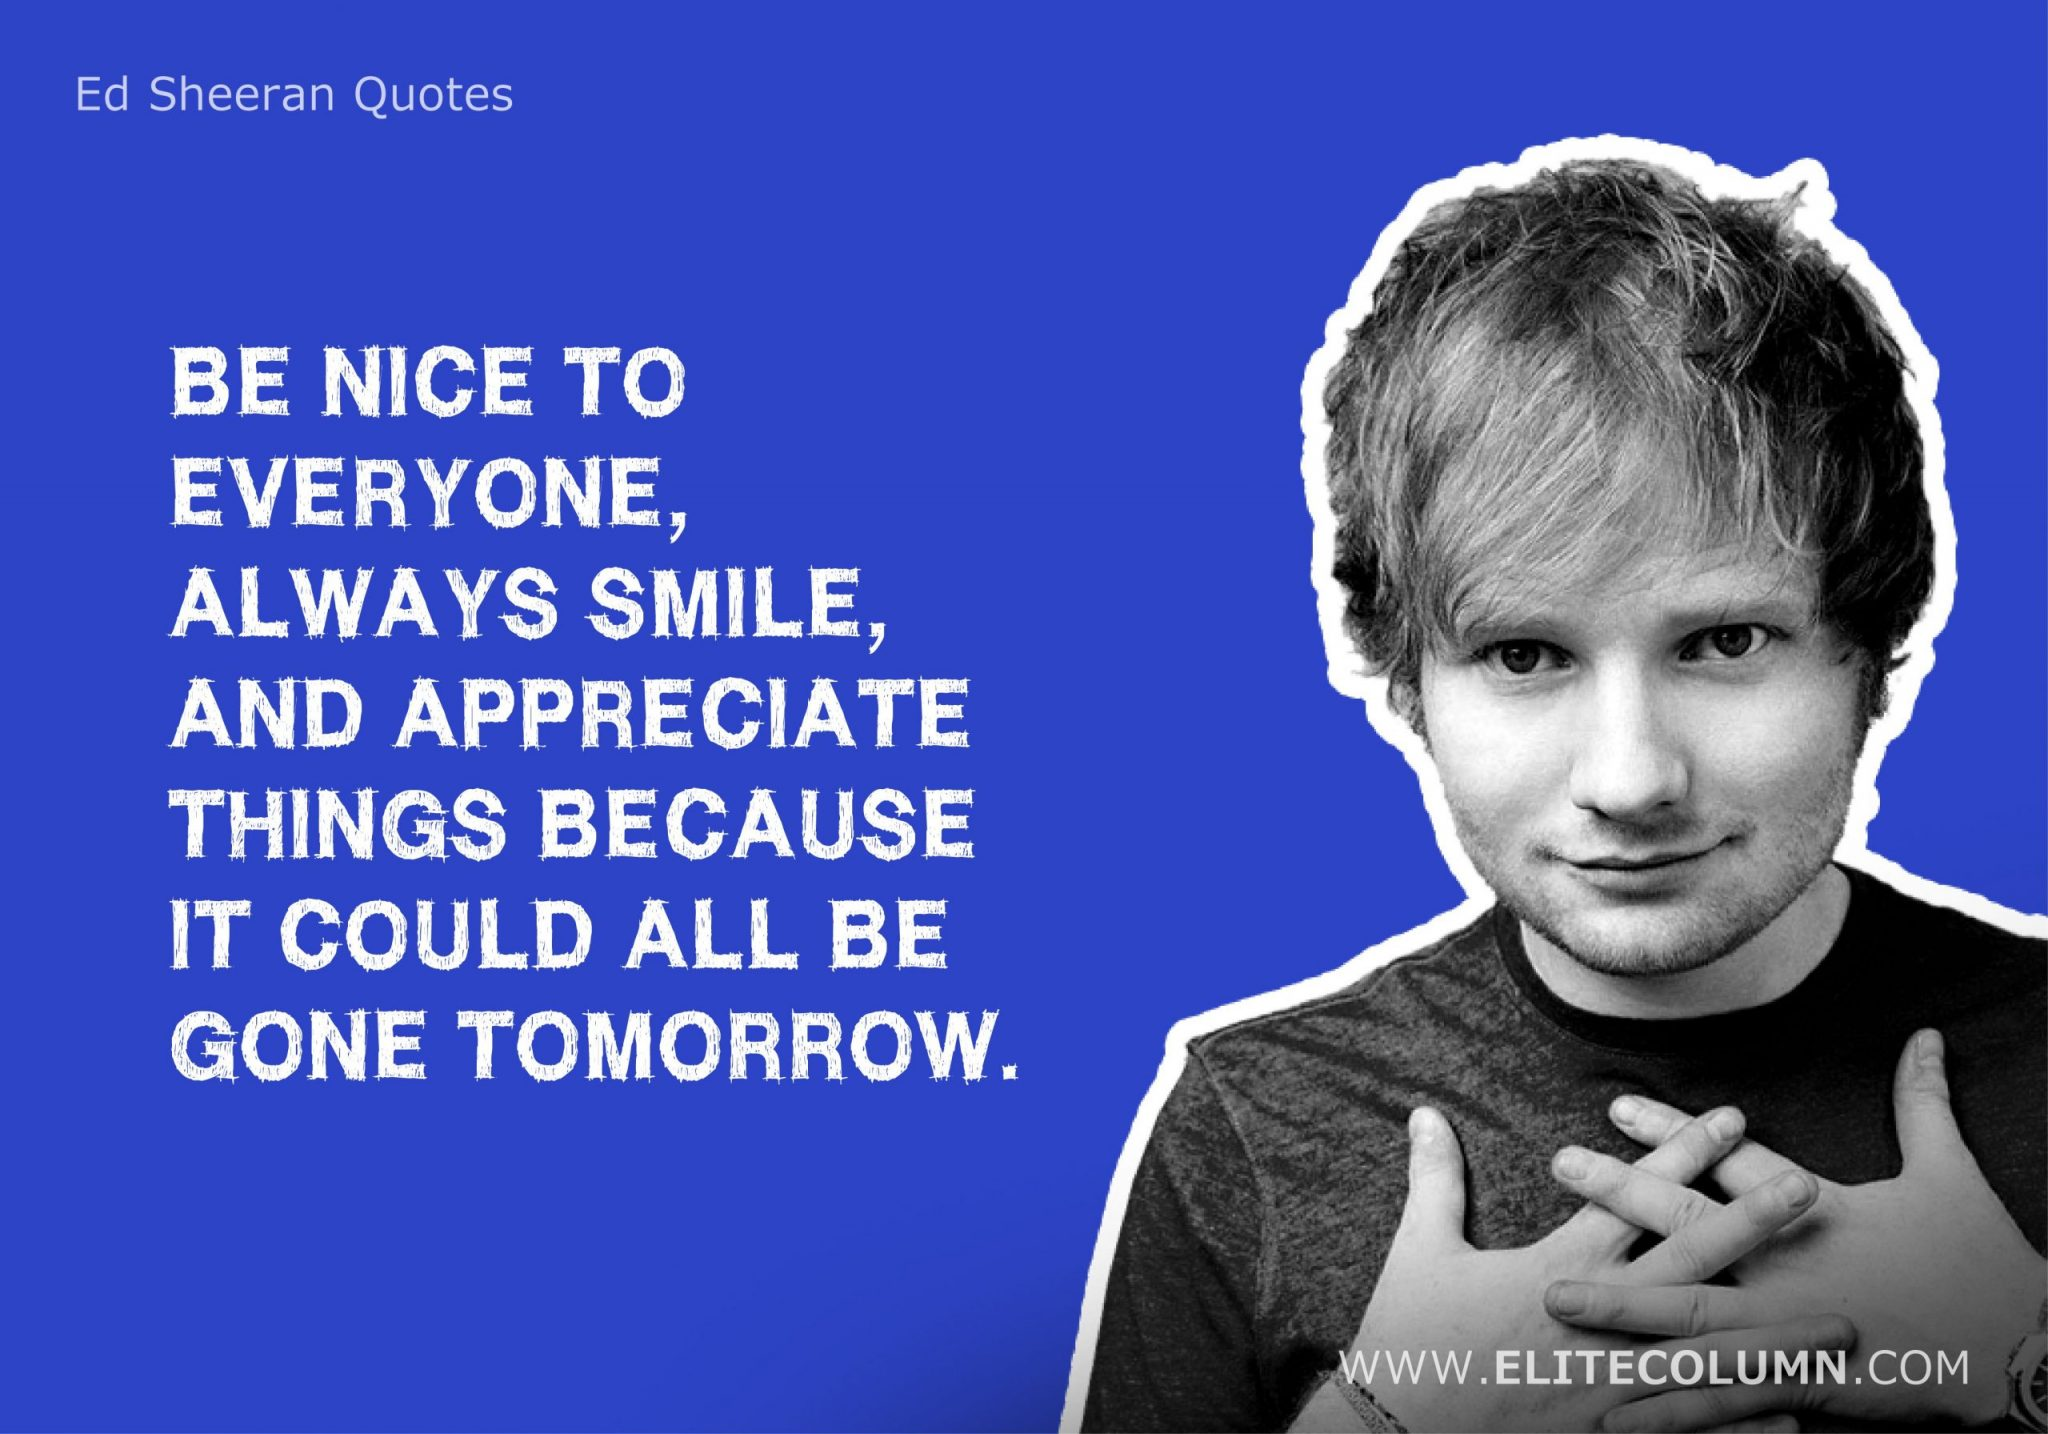 Ed Sheeran Quotes (13)